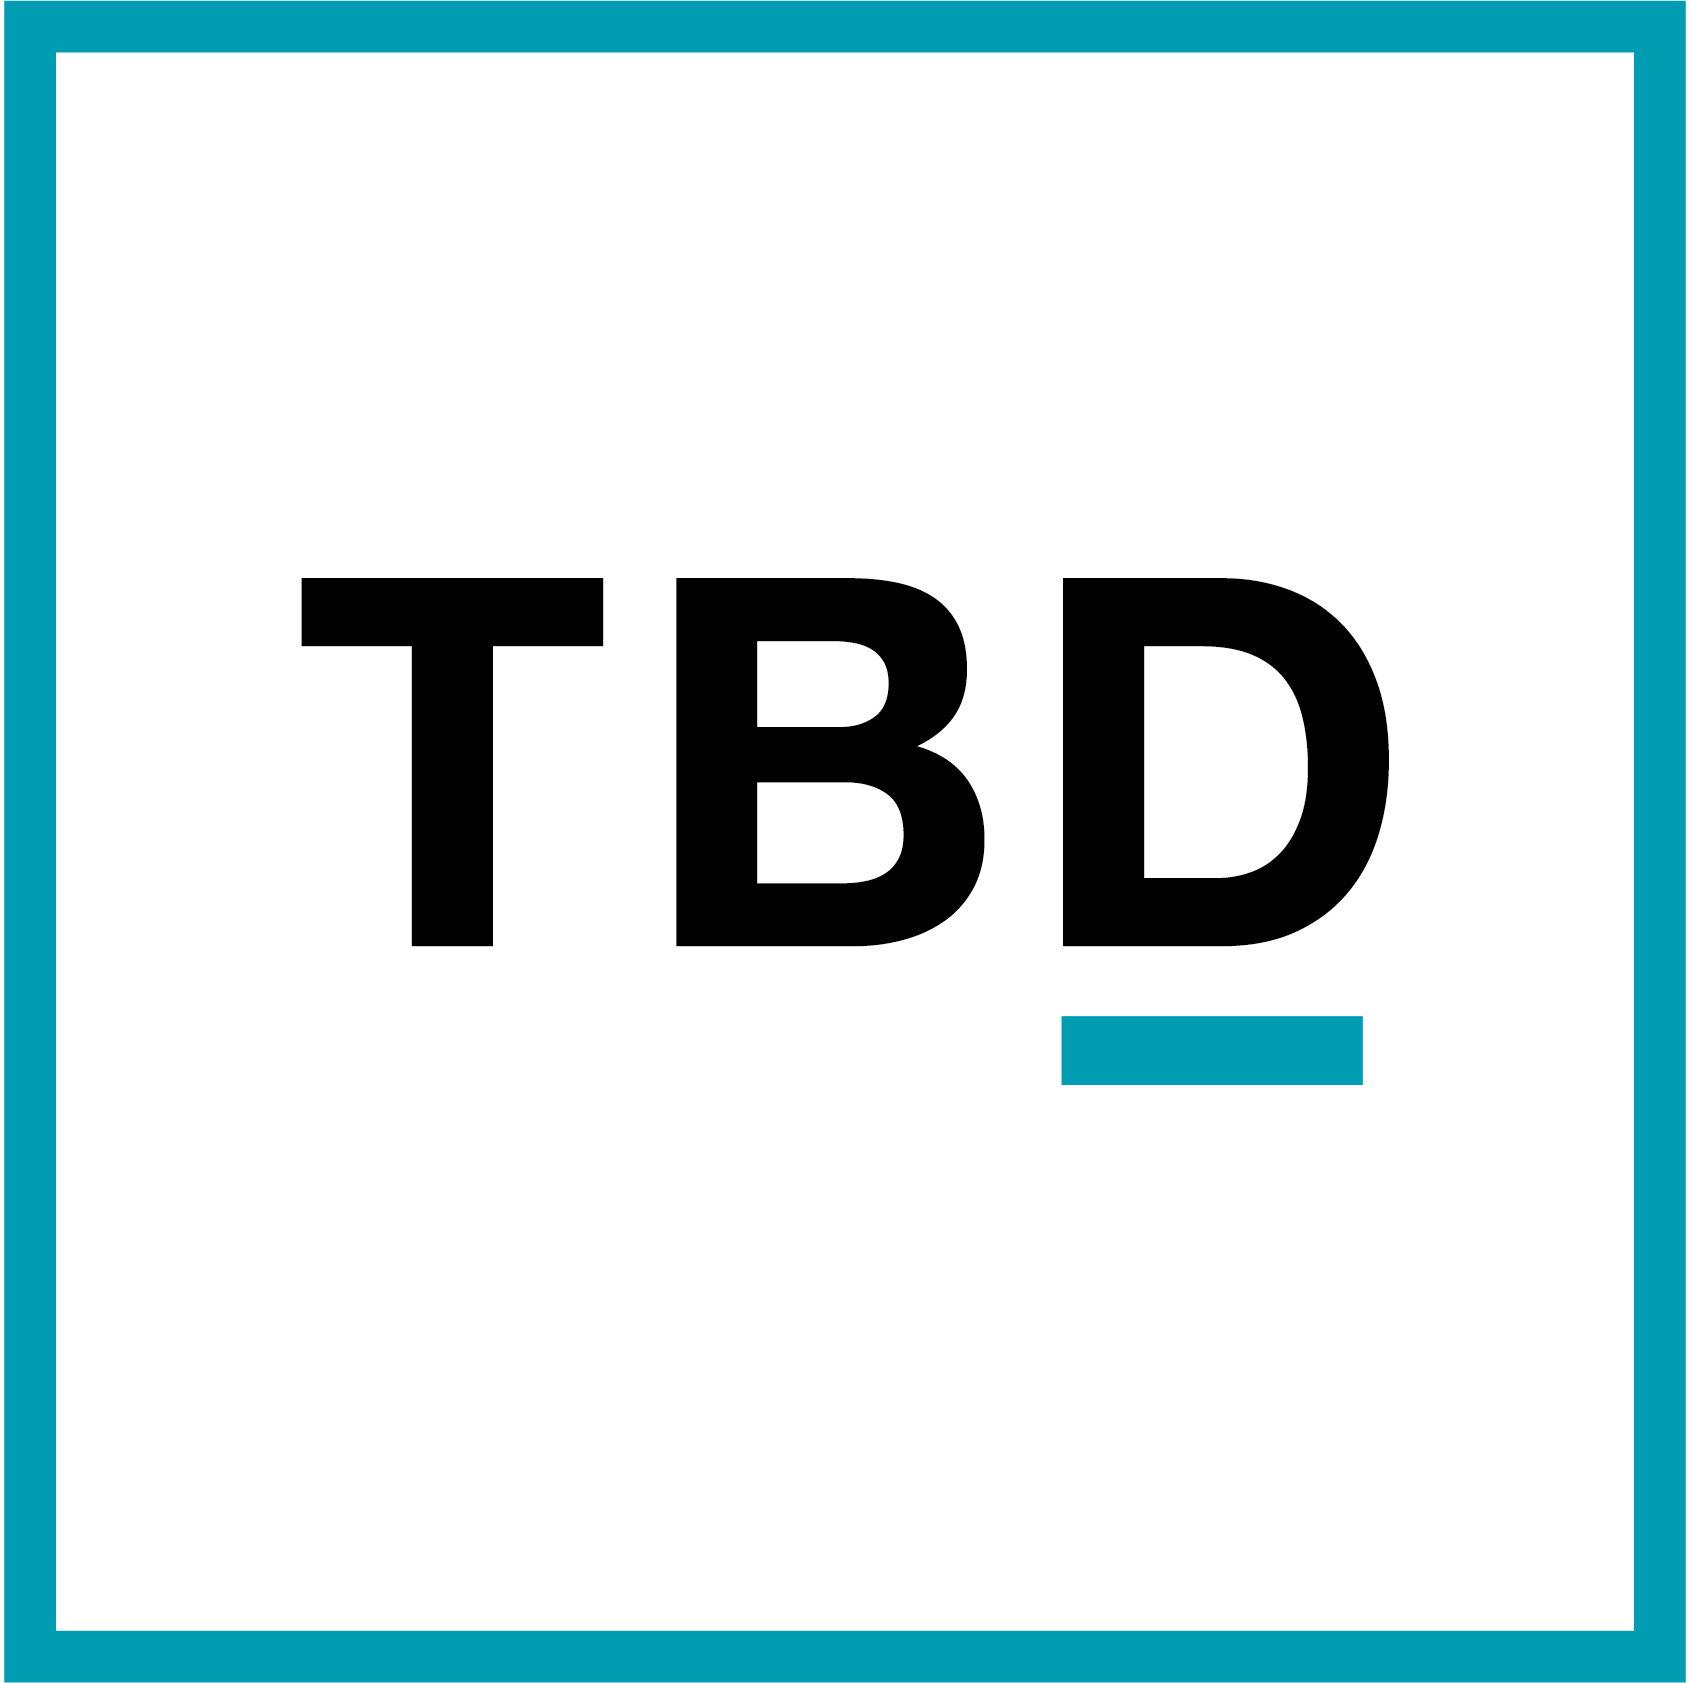 TBD Marketing Ltd